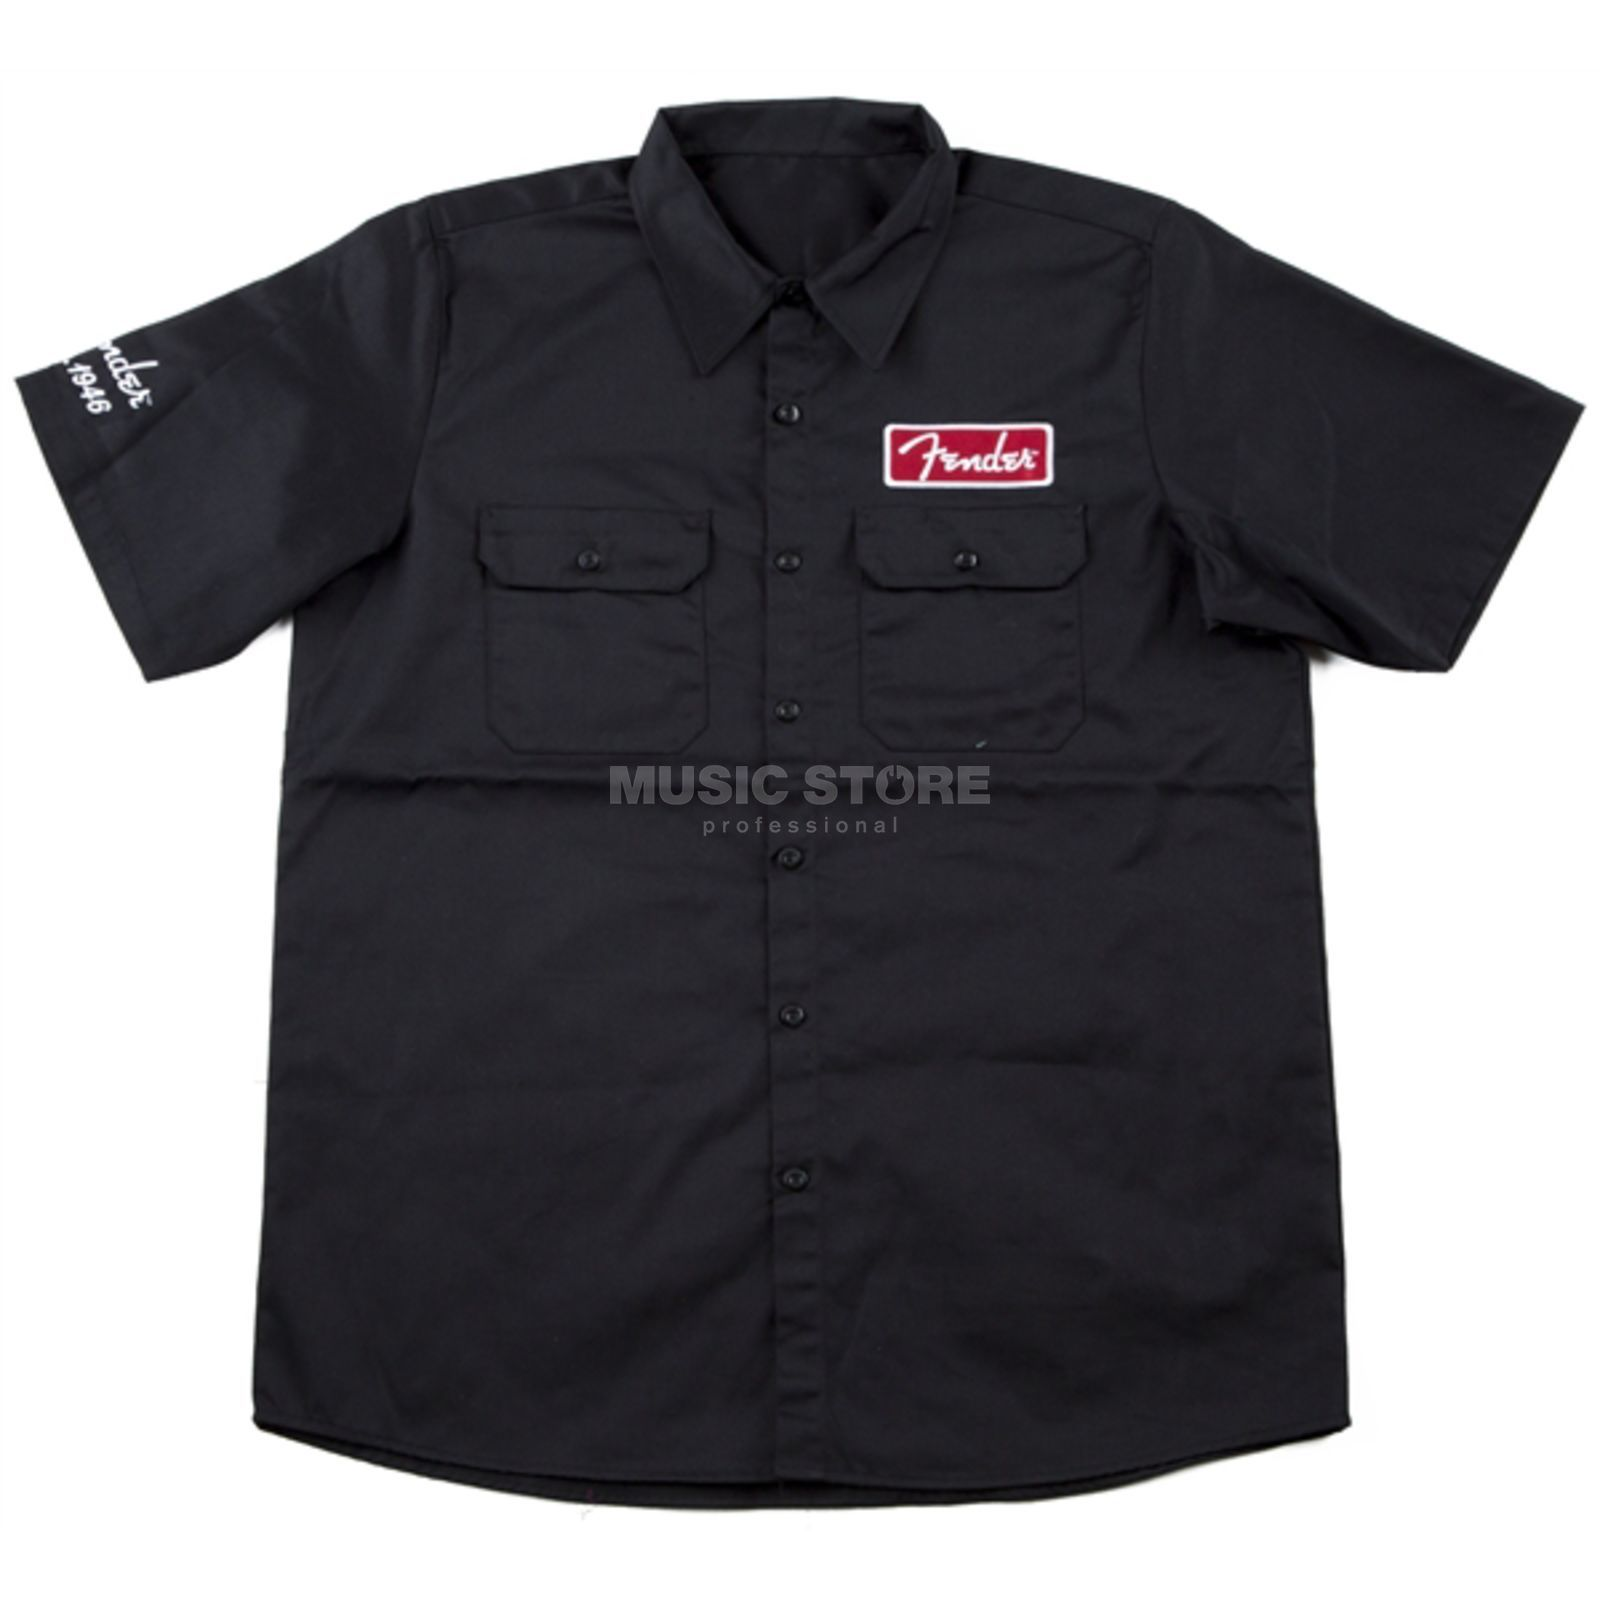 Fender Workshirt M Black Product Image